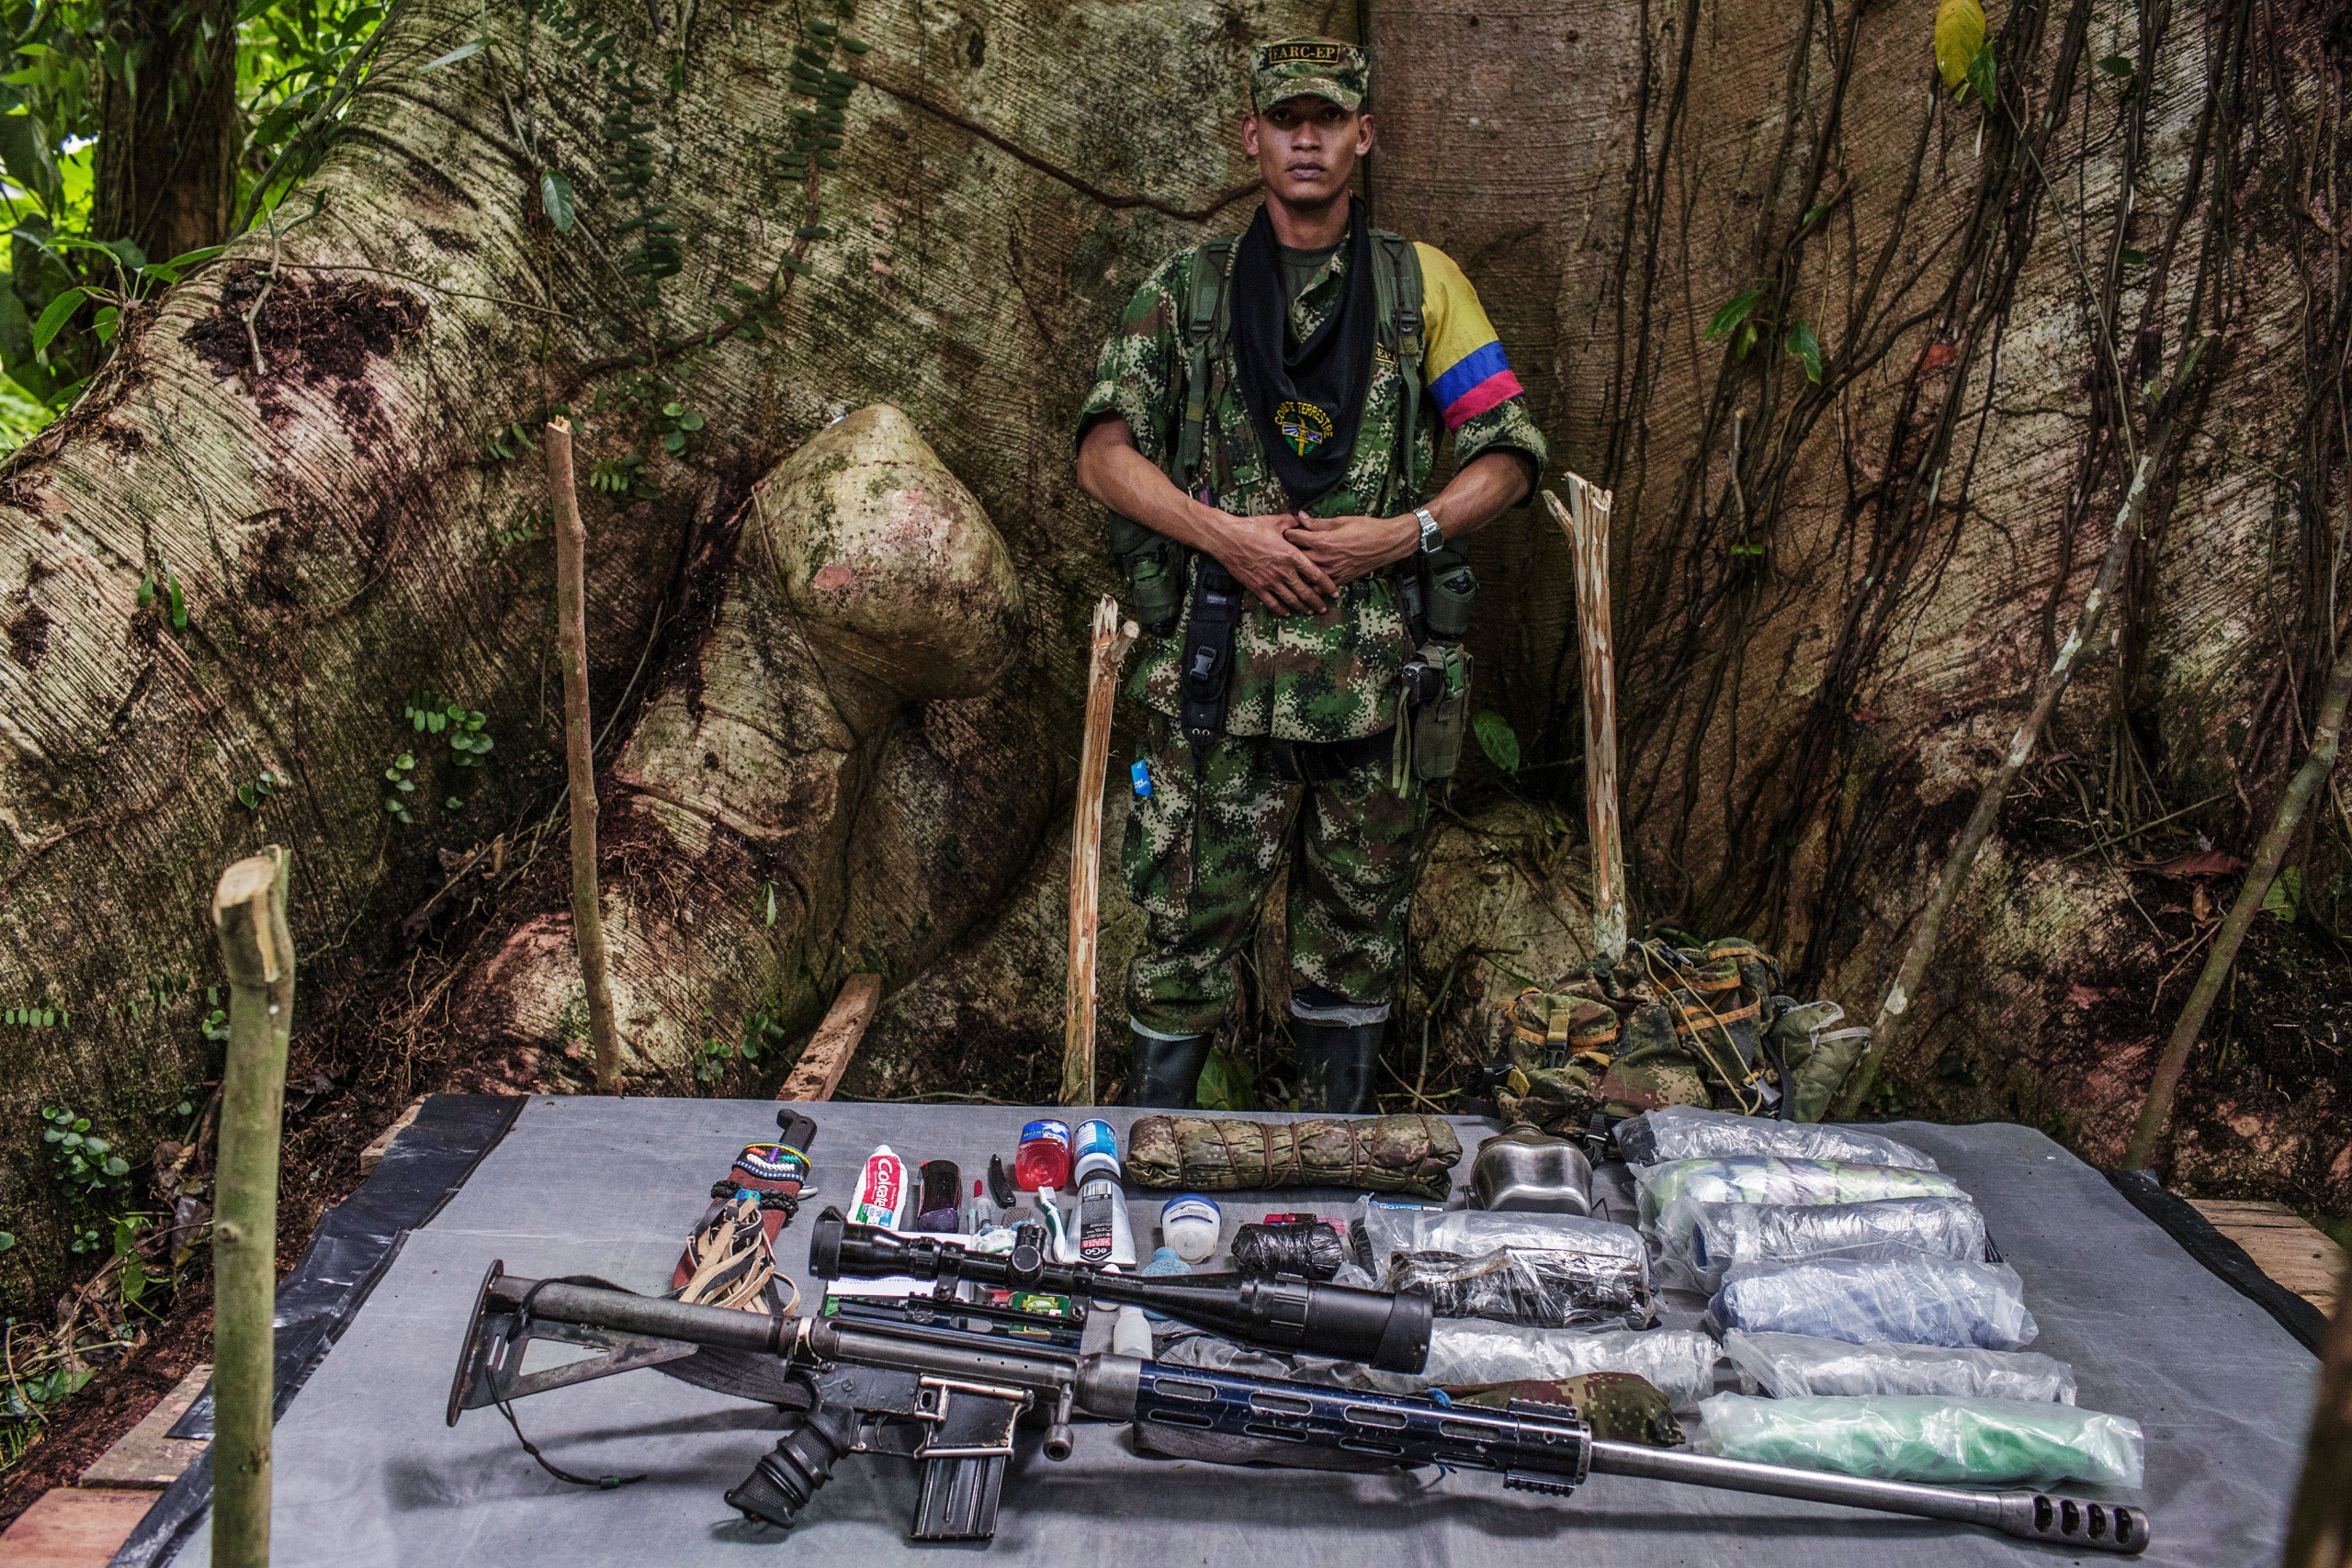 Oswaldo,  22-years old, has been with FARC for 10 years.                                Because OswaldoÕs position is on the frontline, he is armed with heavy artillery. His weapon is handcrafted to combine a .50 rifle and a machine gun.